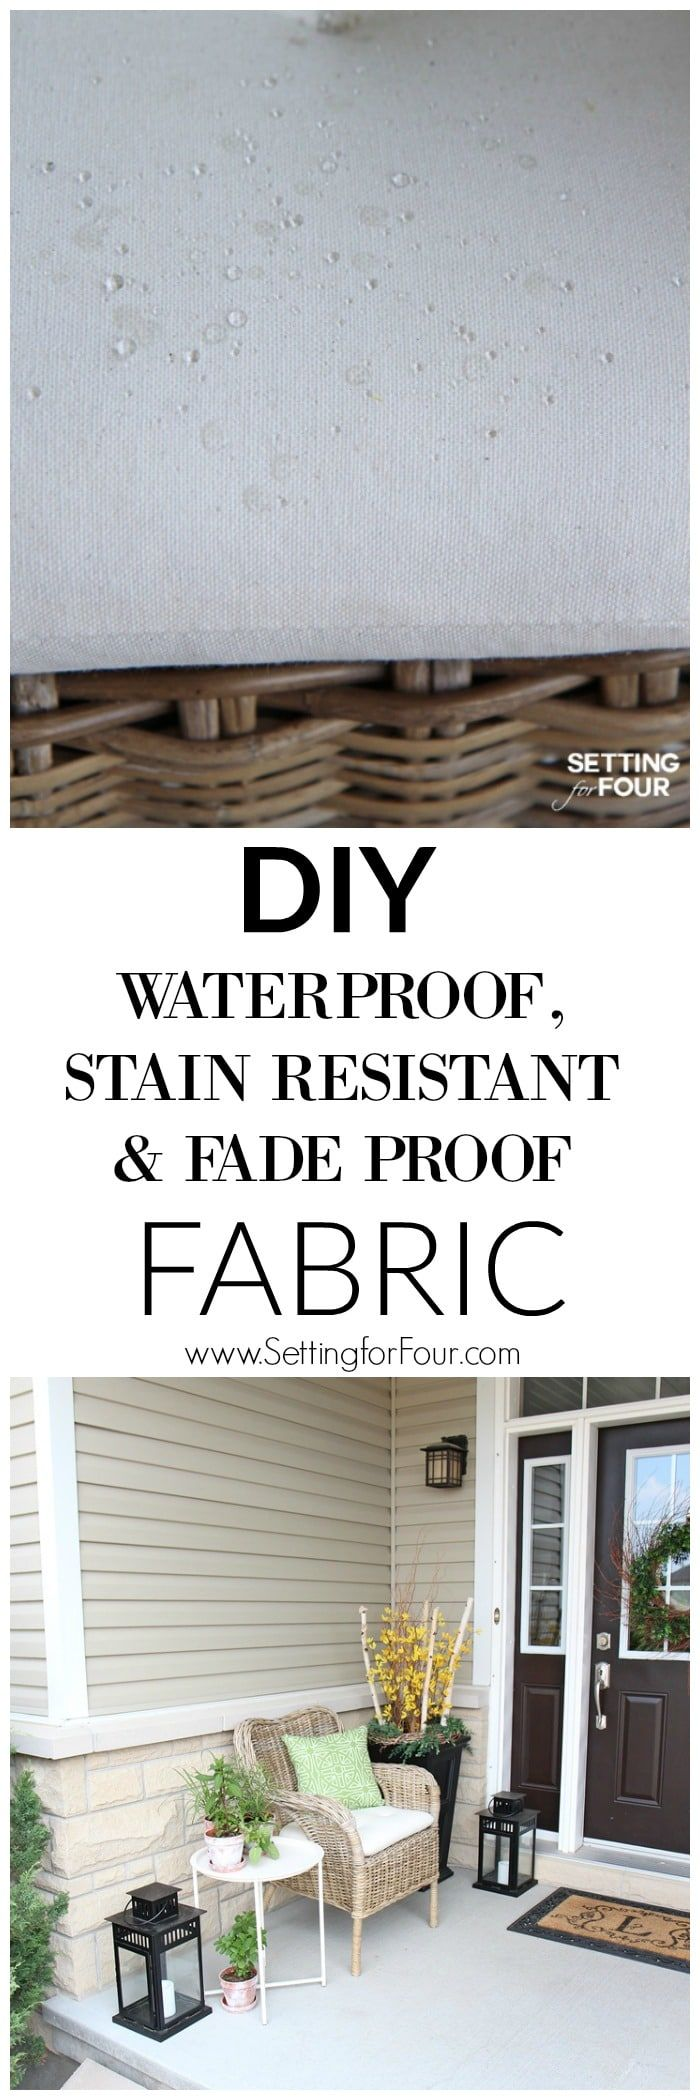 How To Make Outdoor Cushions Waterproof.How To Make Outdoor Waterproof Cushions Diy Hack Craft